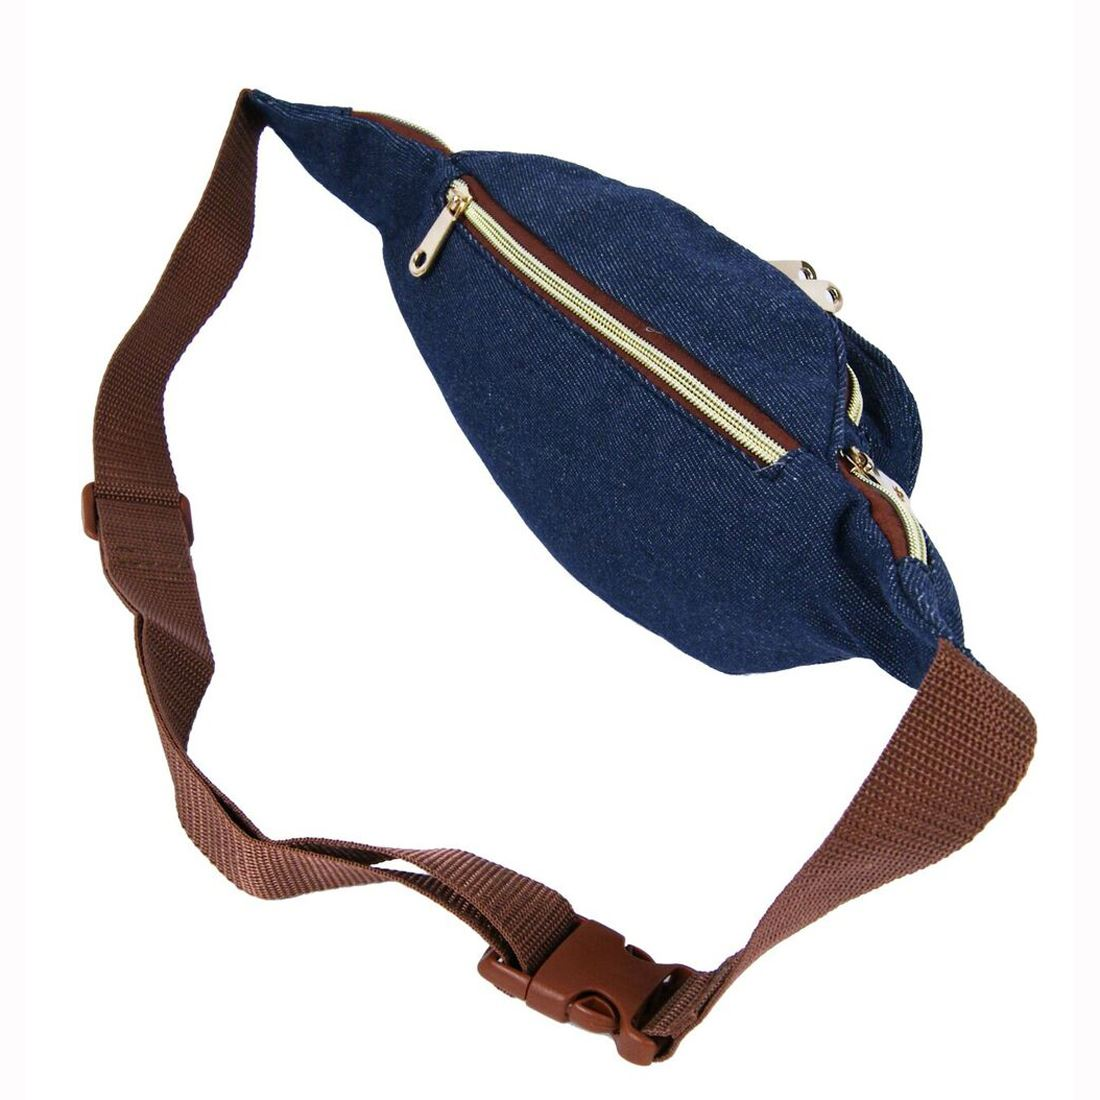 You searched for: ladies bum bags! Etsy is the home to thousands of handmade, vintage, and one-of-a-kind products and gifts related to your search. No matter what you're looking for or where you are in the world, our global marketplace of sellers can help you find unique and affordable options. Let's get started!